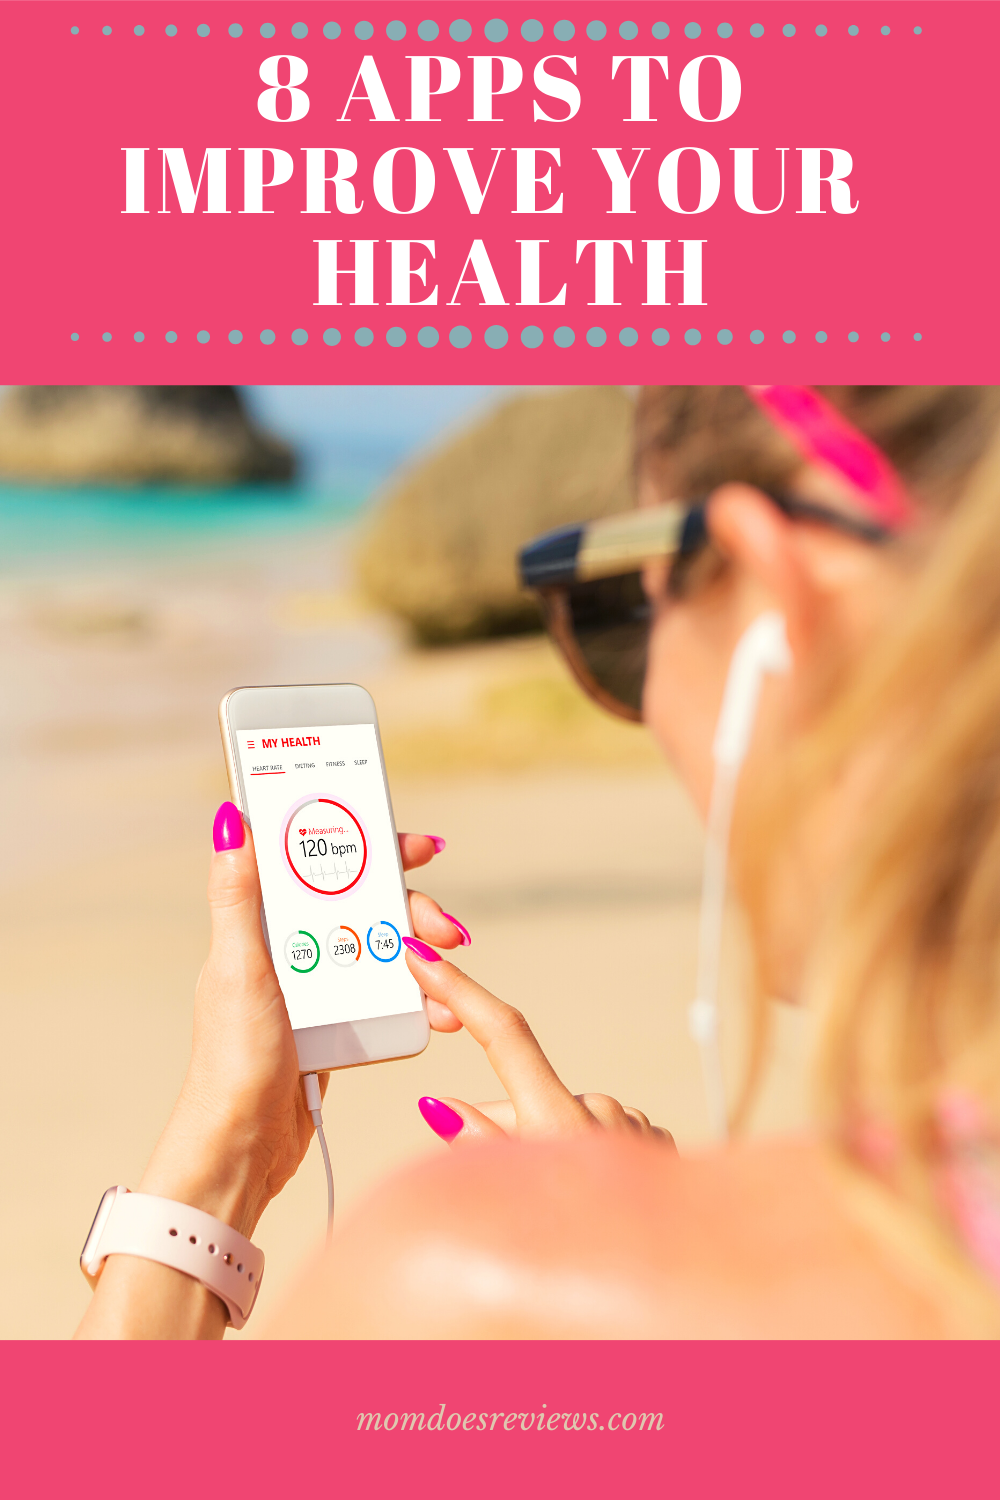 8 Apps To Improve Your Mental & Physical Health